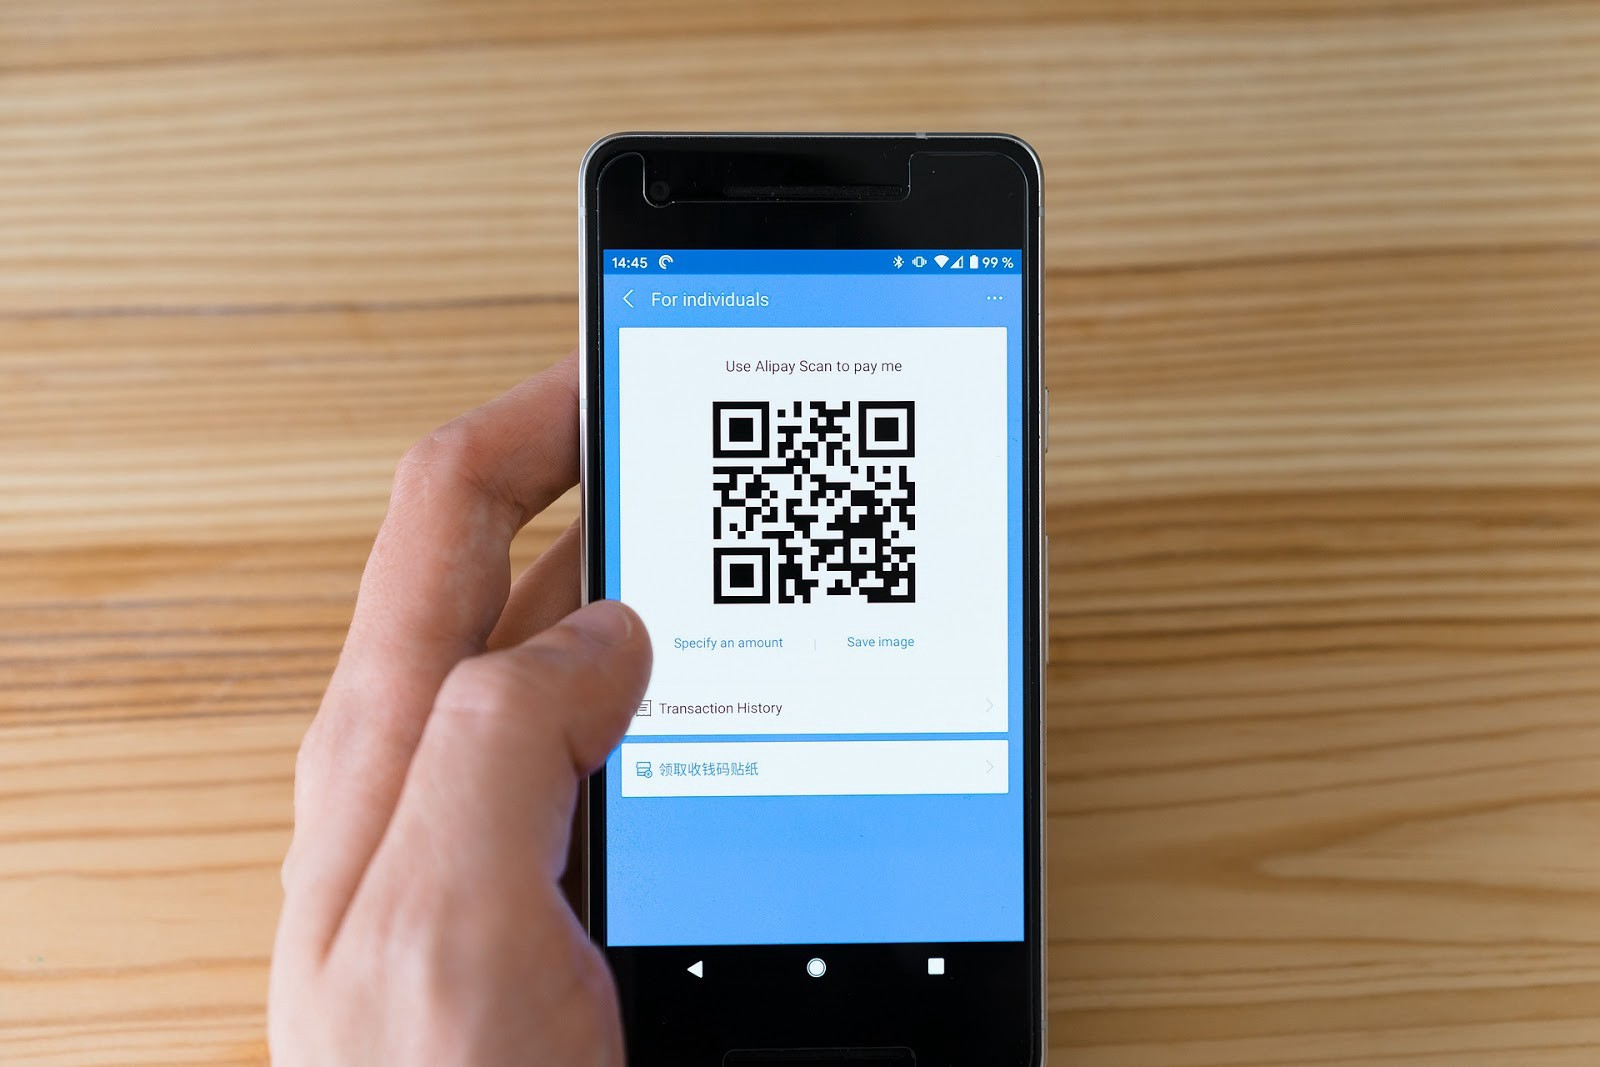 A user making payment through mobile payment app